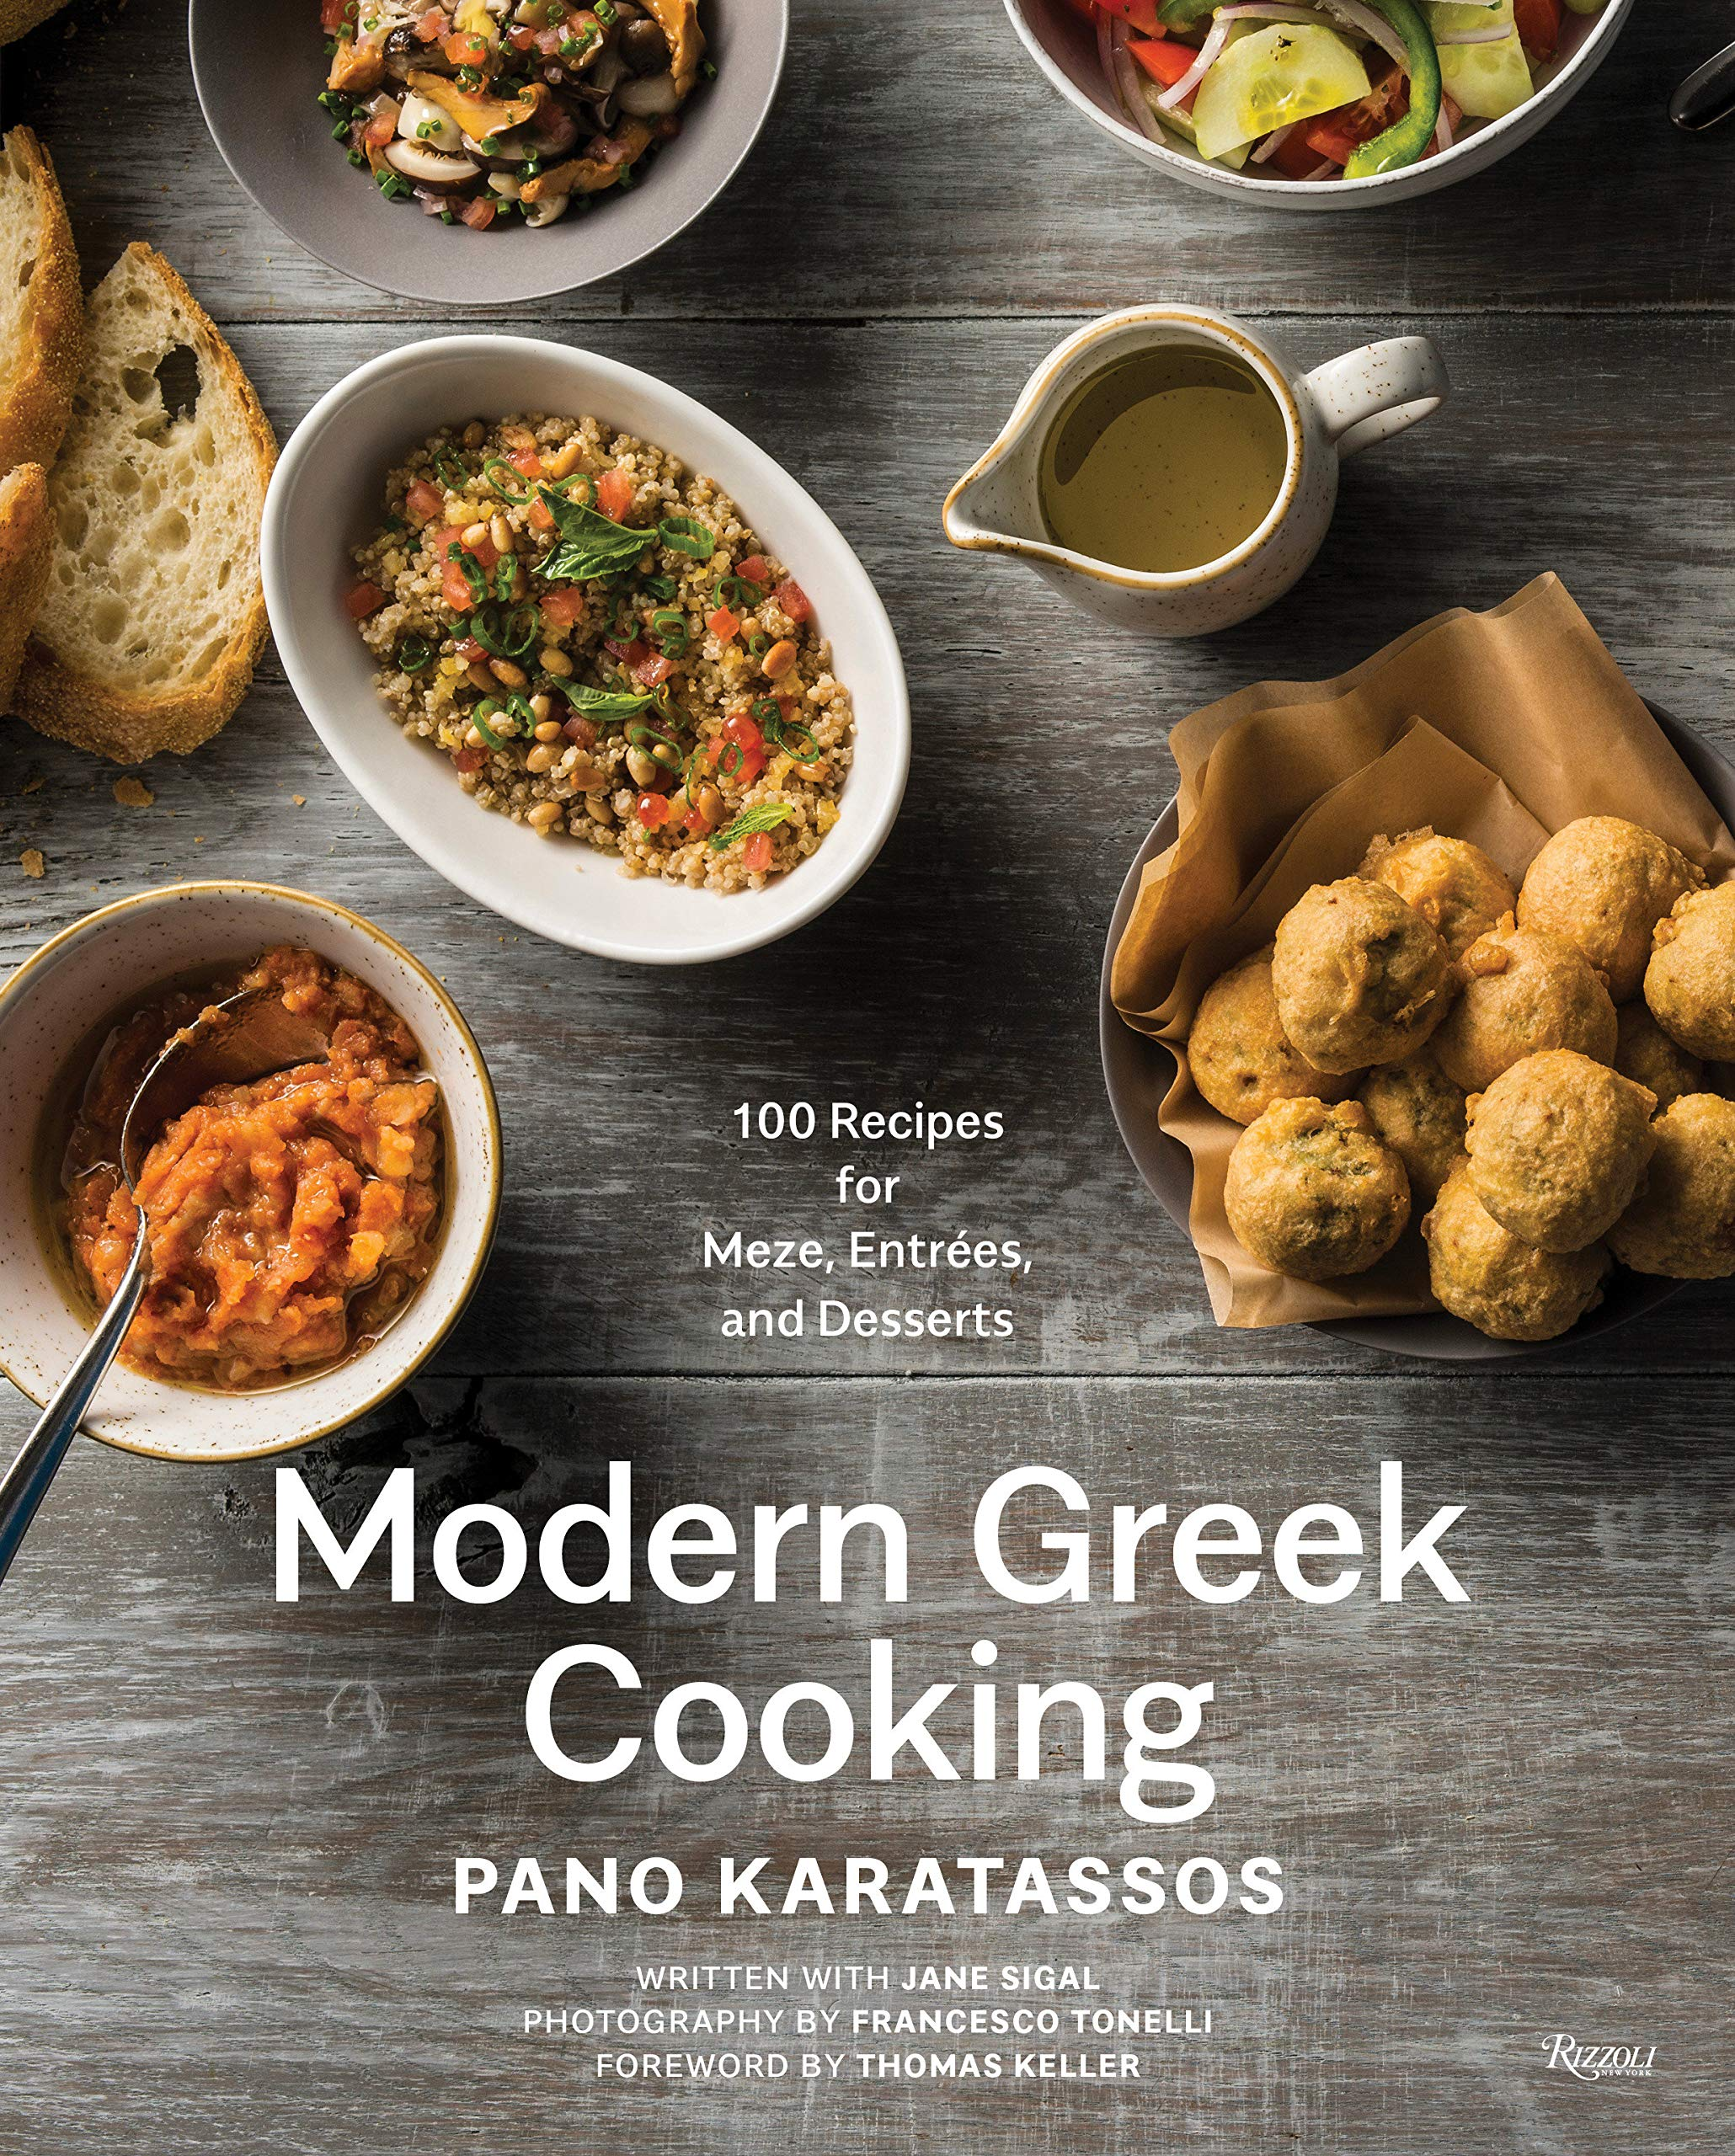 Modern Greek Cooking 100 Recipes For Meze Entrees And